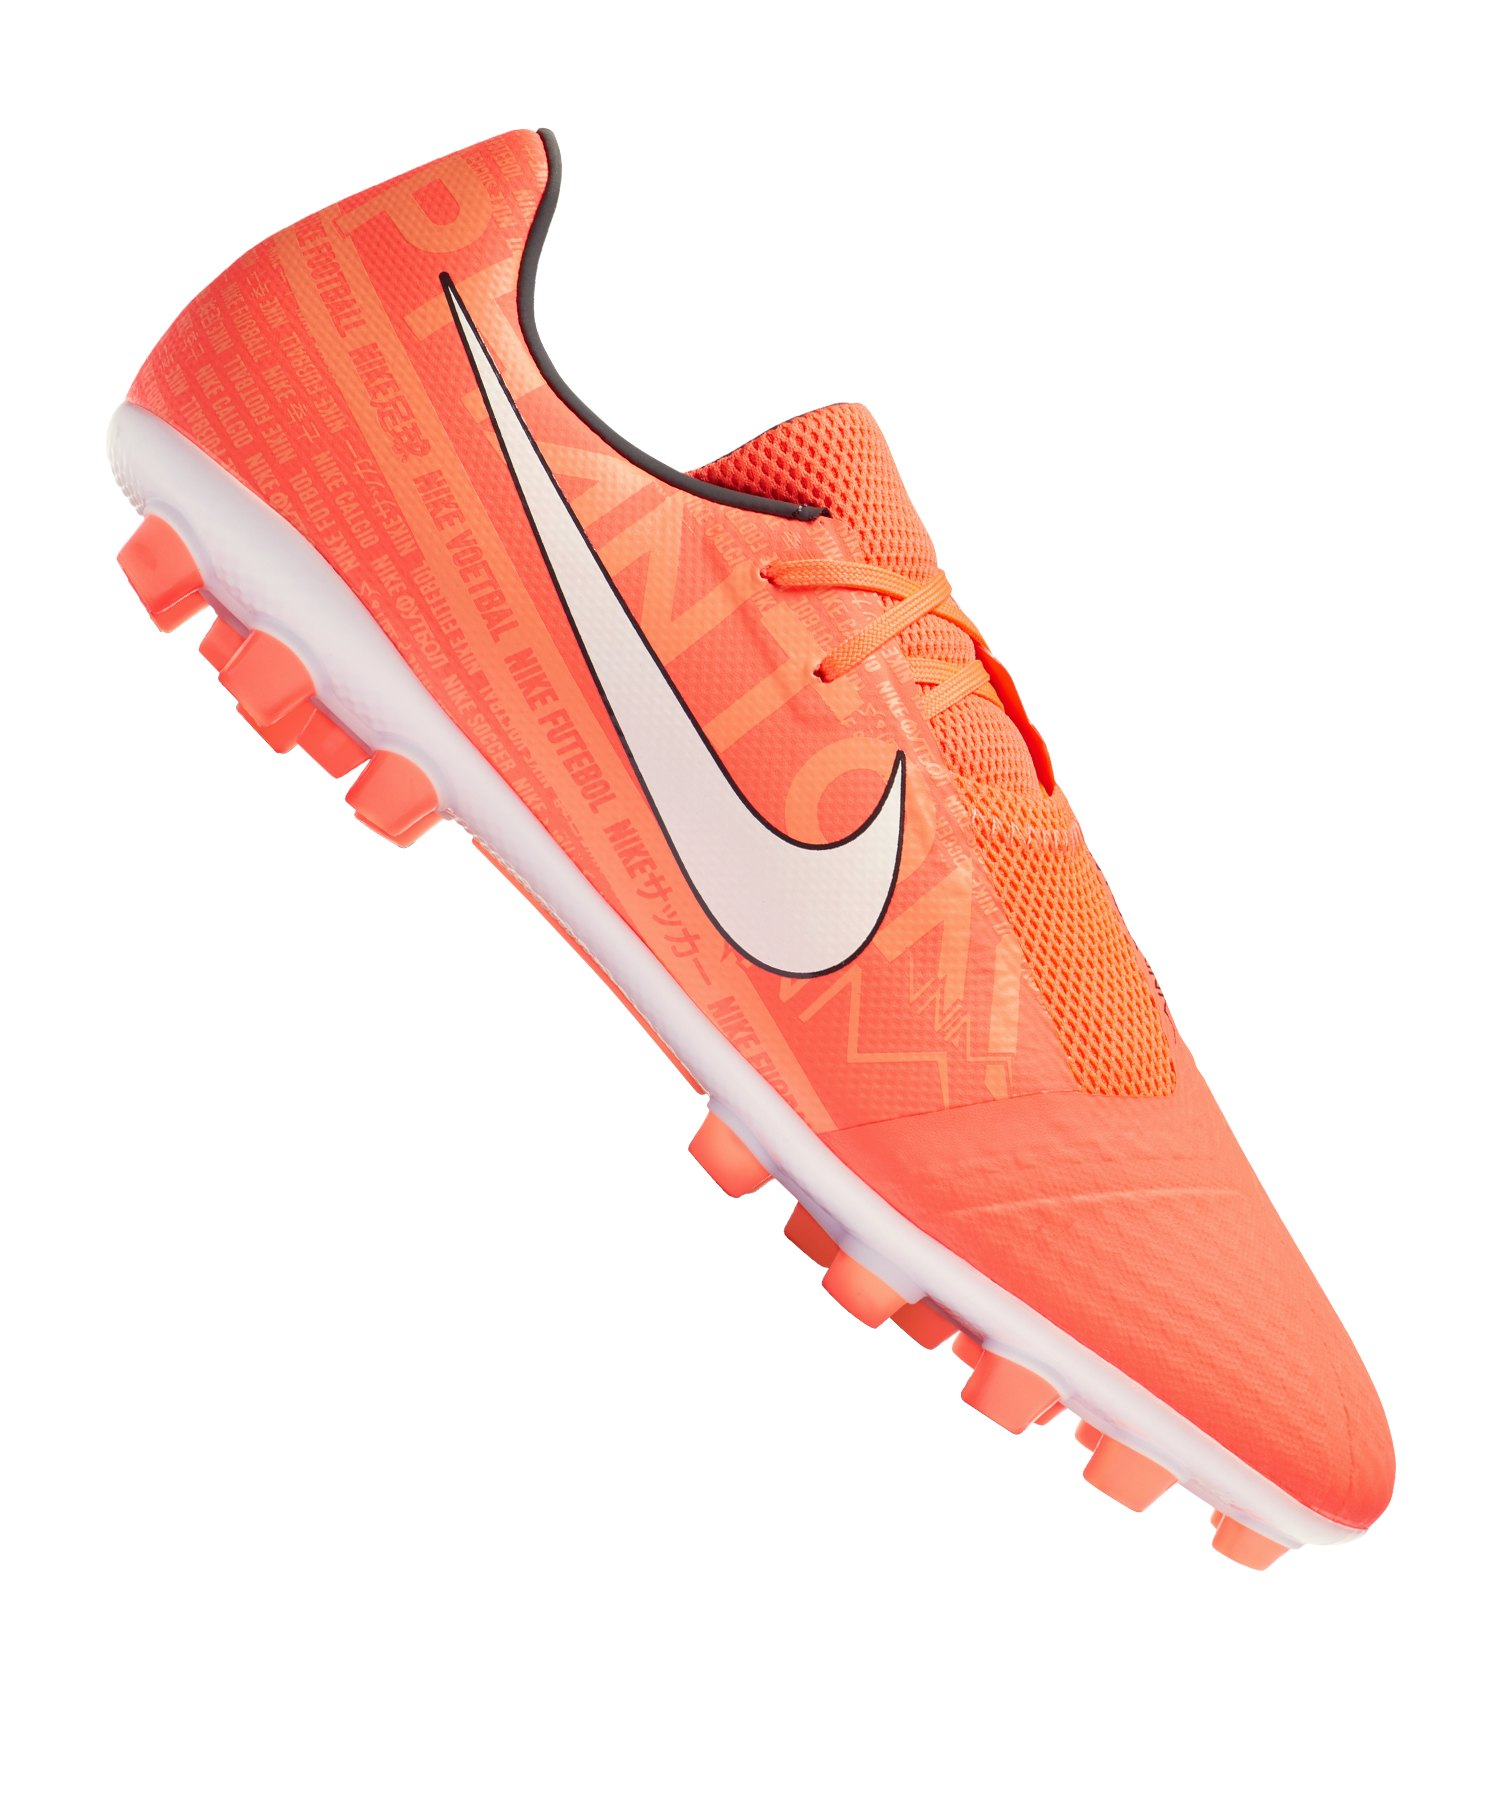 Nike Phantom Venom Academy AG Orange F810 - orange